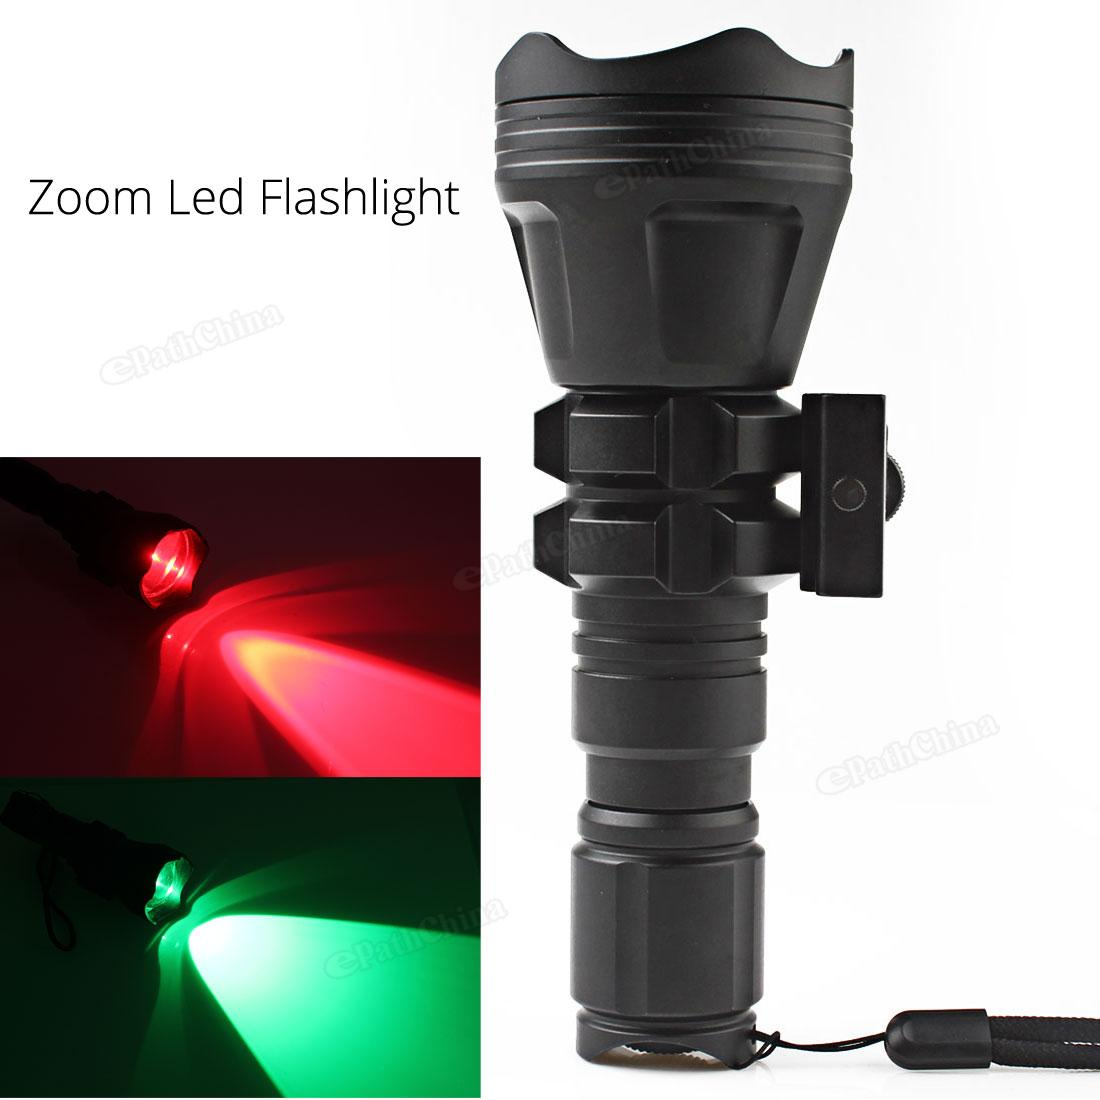 top 10 zoom flashlight list and get free shipping - 24k8faa3